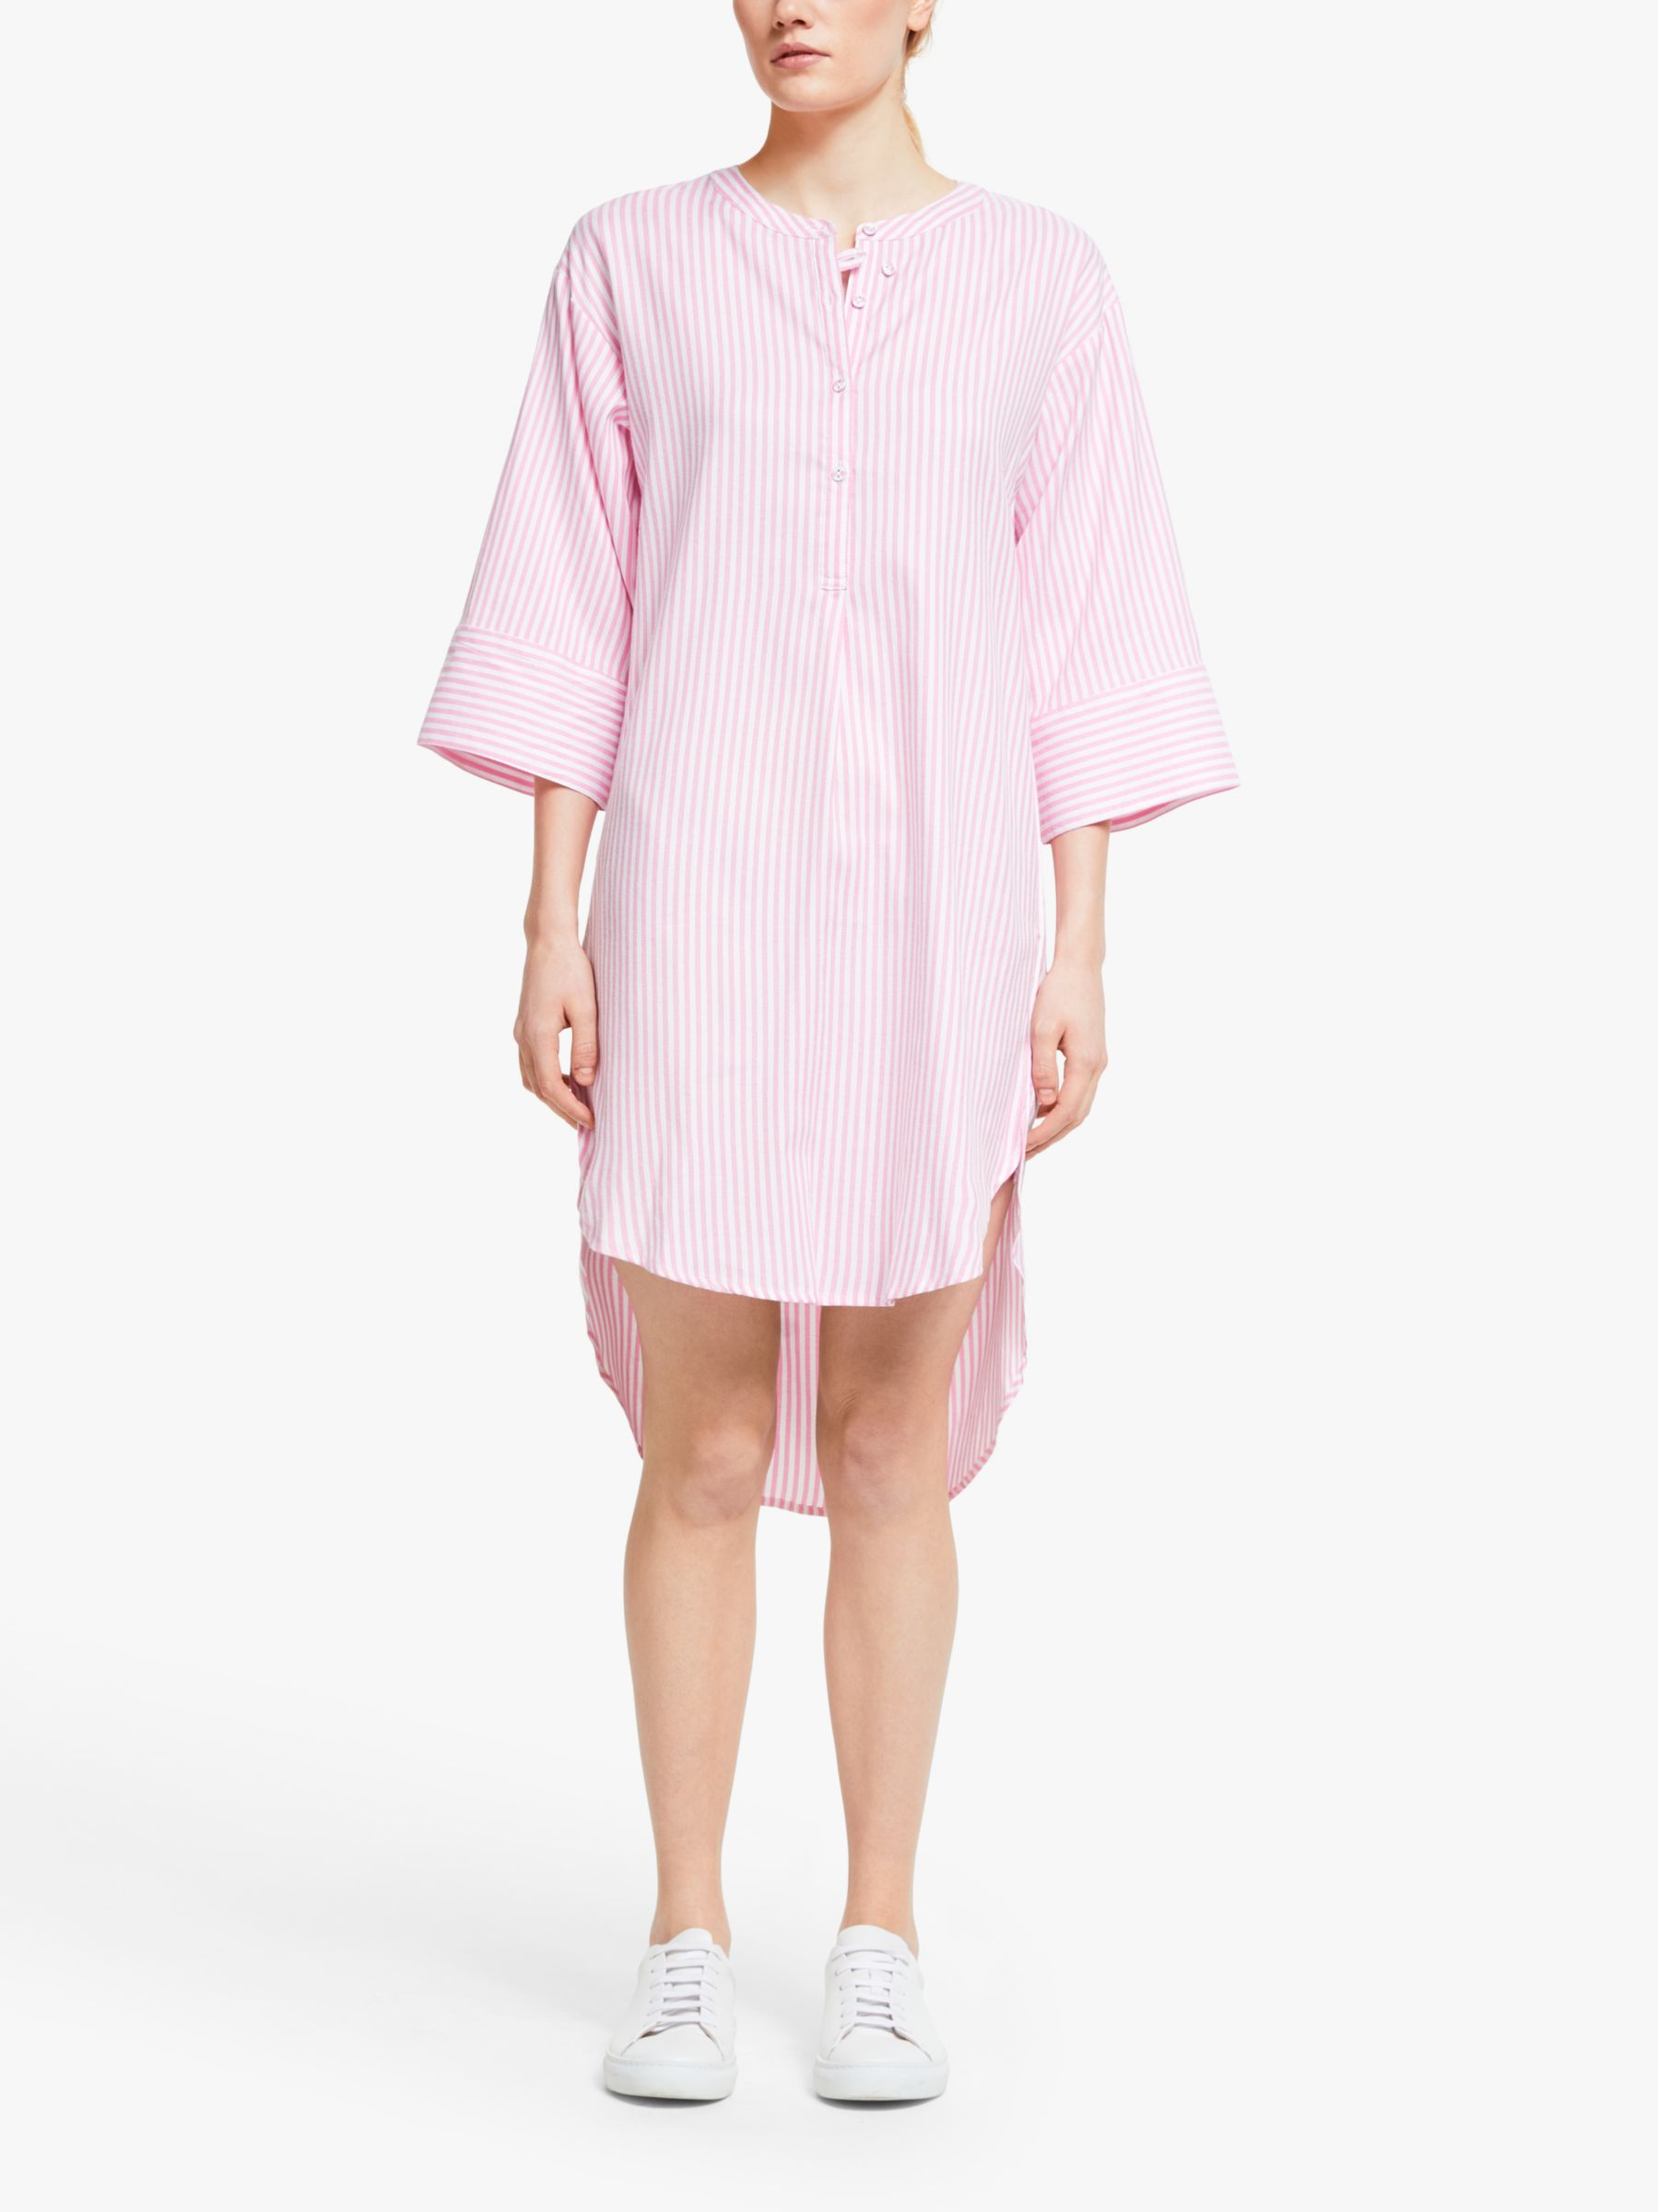 Numph Numph Nuaiden Stripe Shirt Dress, Pink Carnation